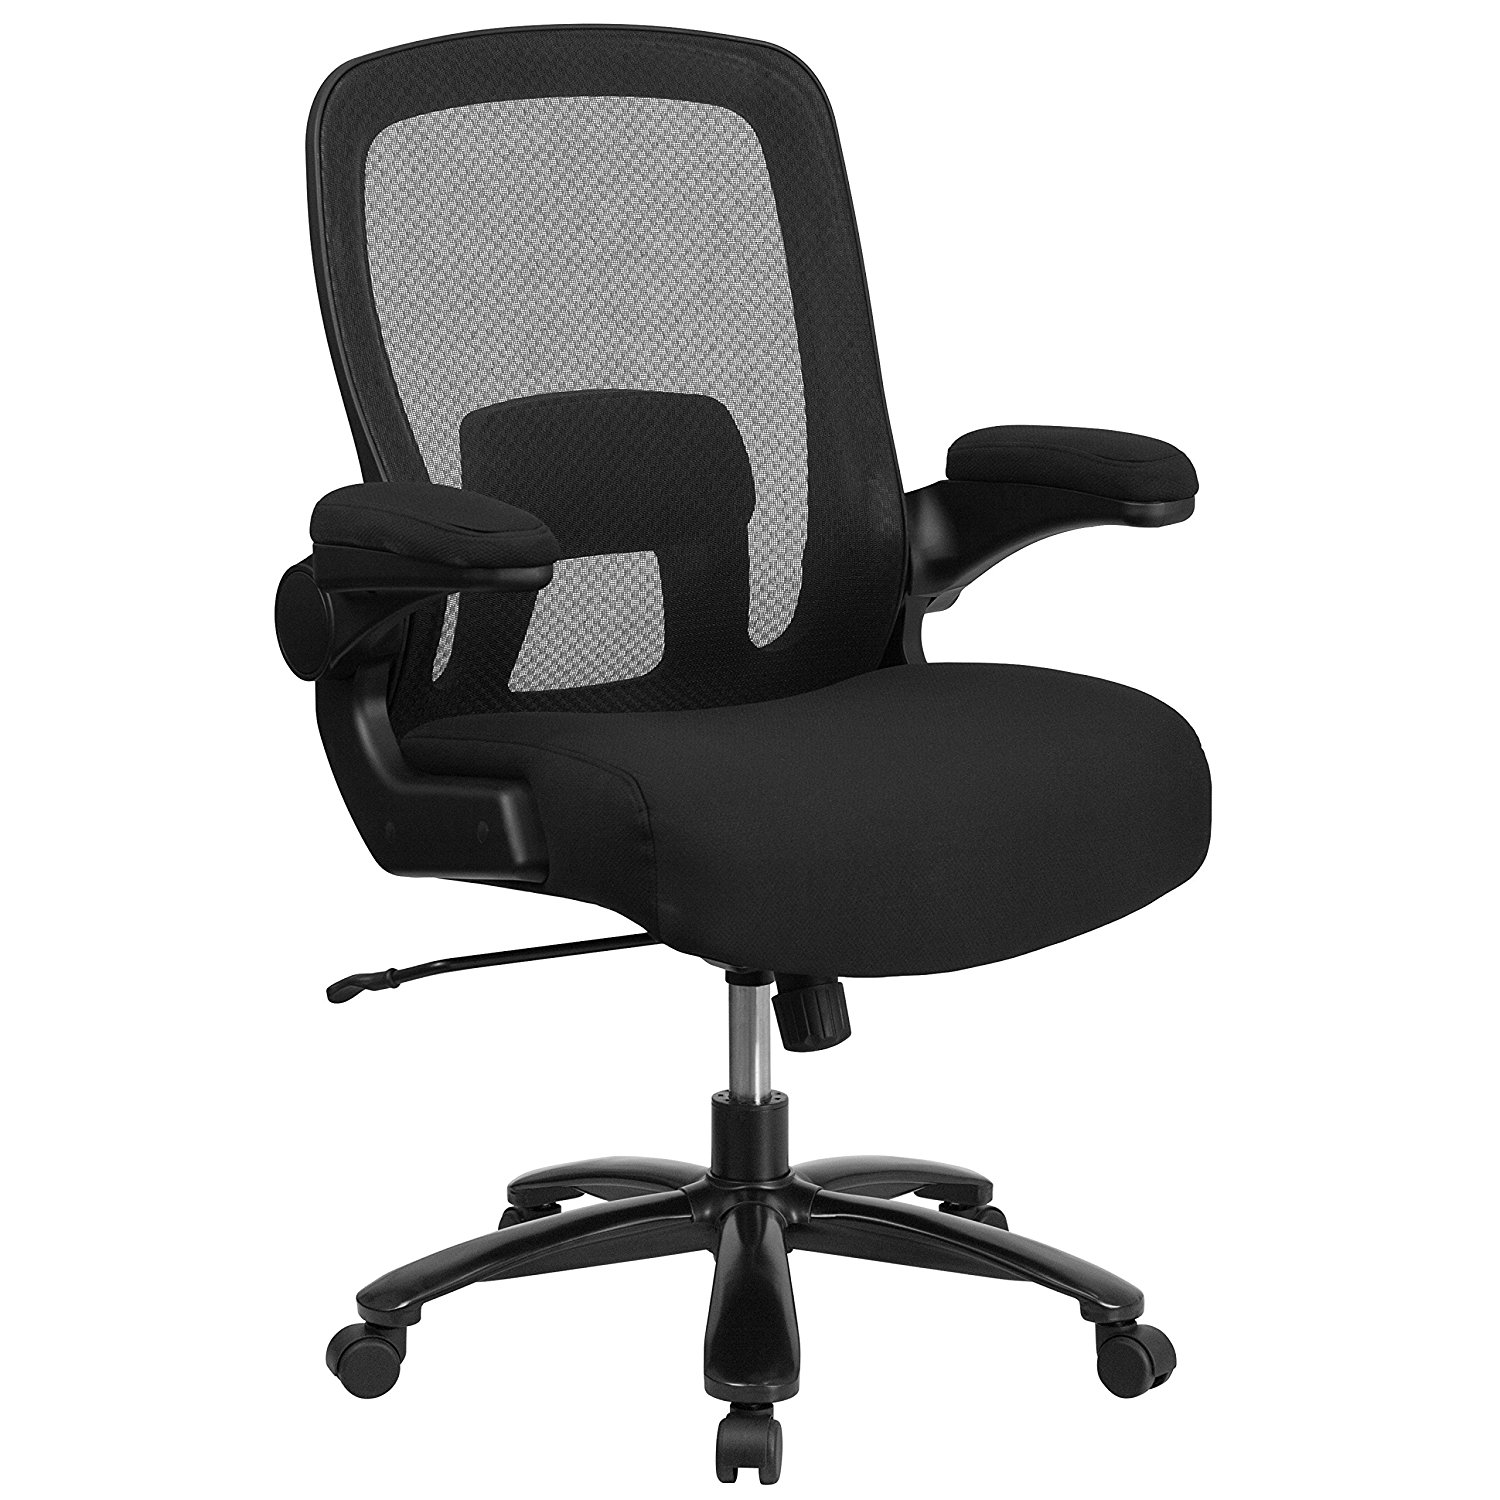 500 lb Weight Capacity Mesh Office Chair Reviews - Best Heavy Duty Office Chairs Reviews on office table and chairs, office desk chairs, office chairs for bad backs, office accessories, office chairs product, office conference,